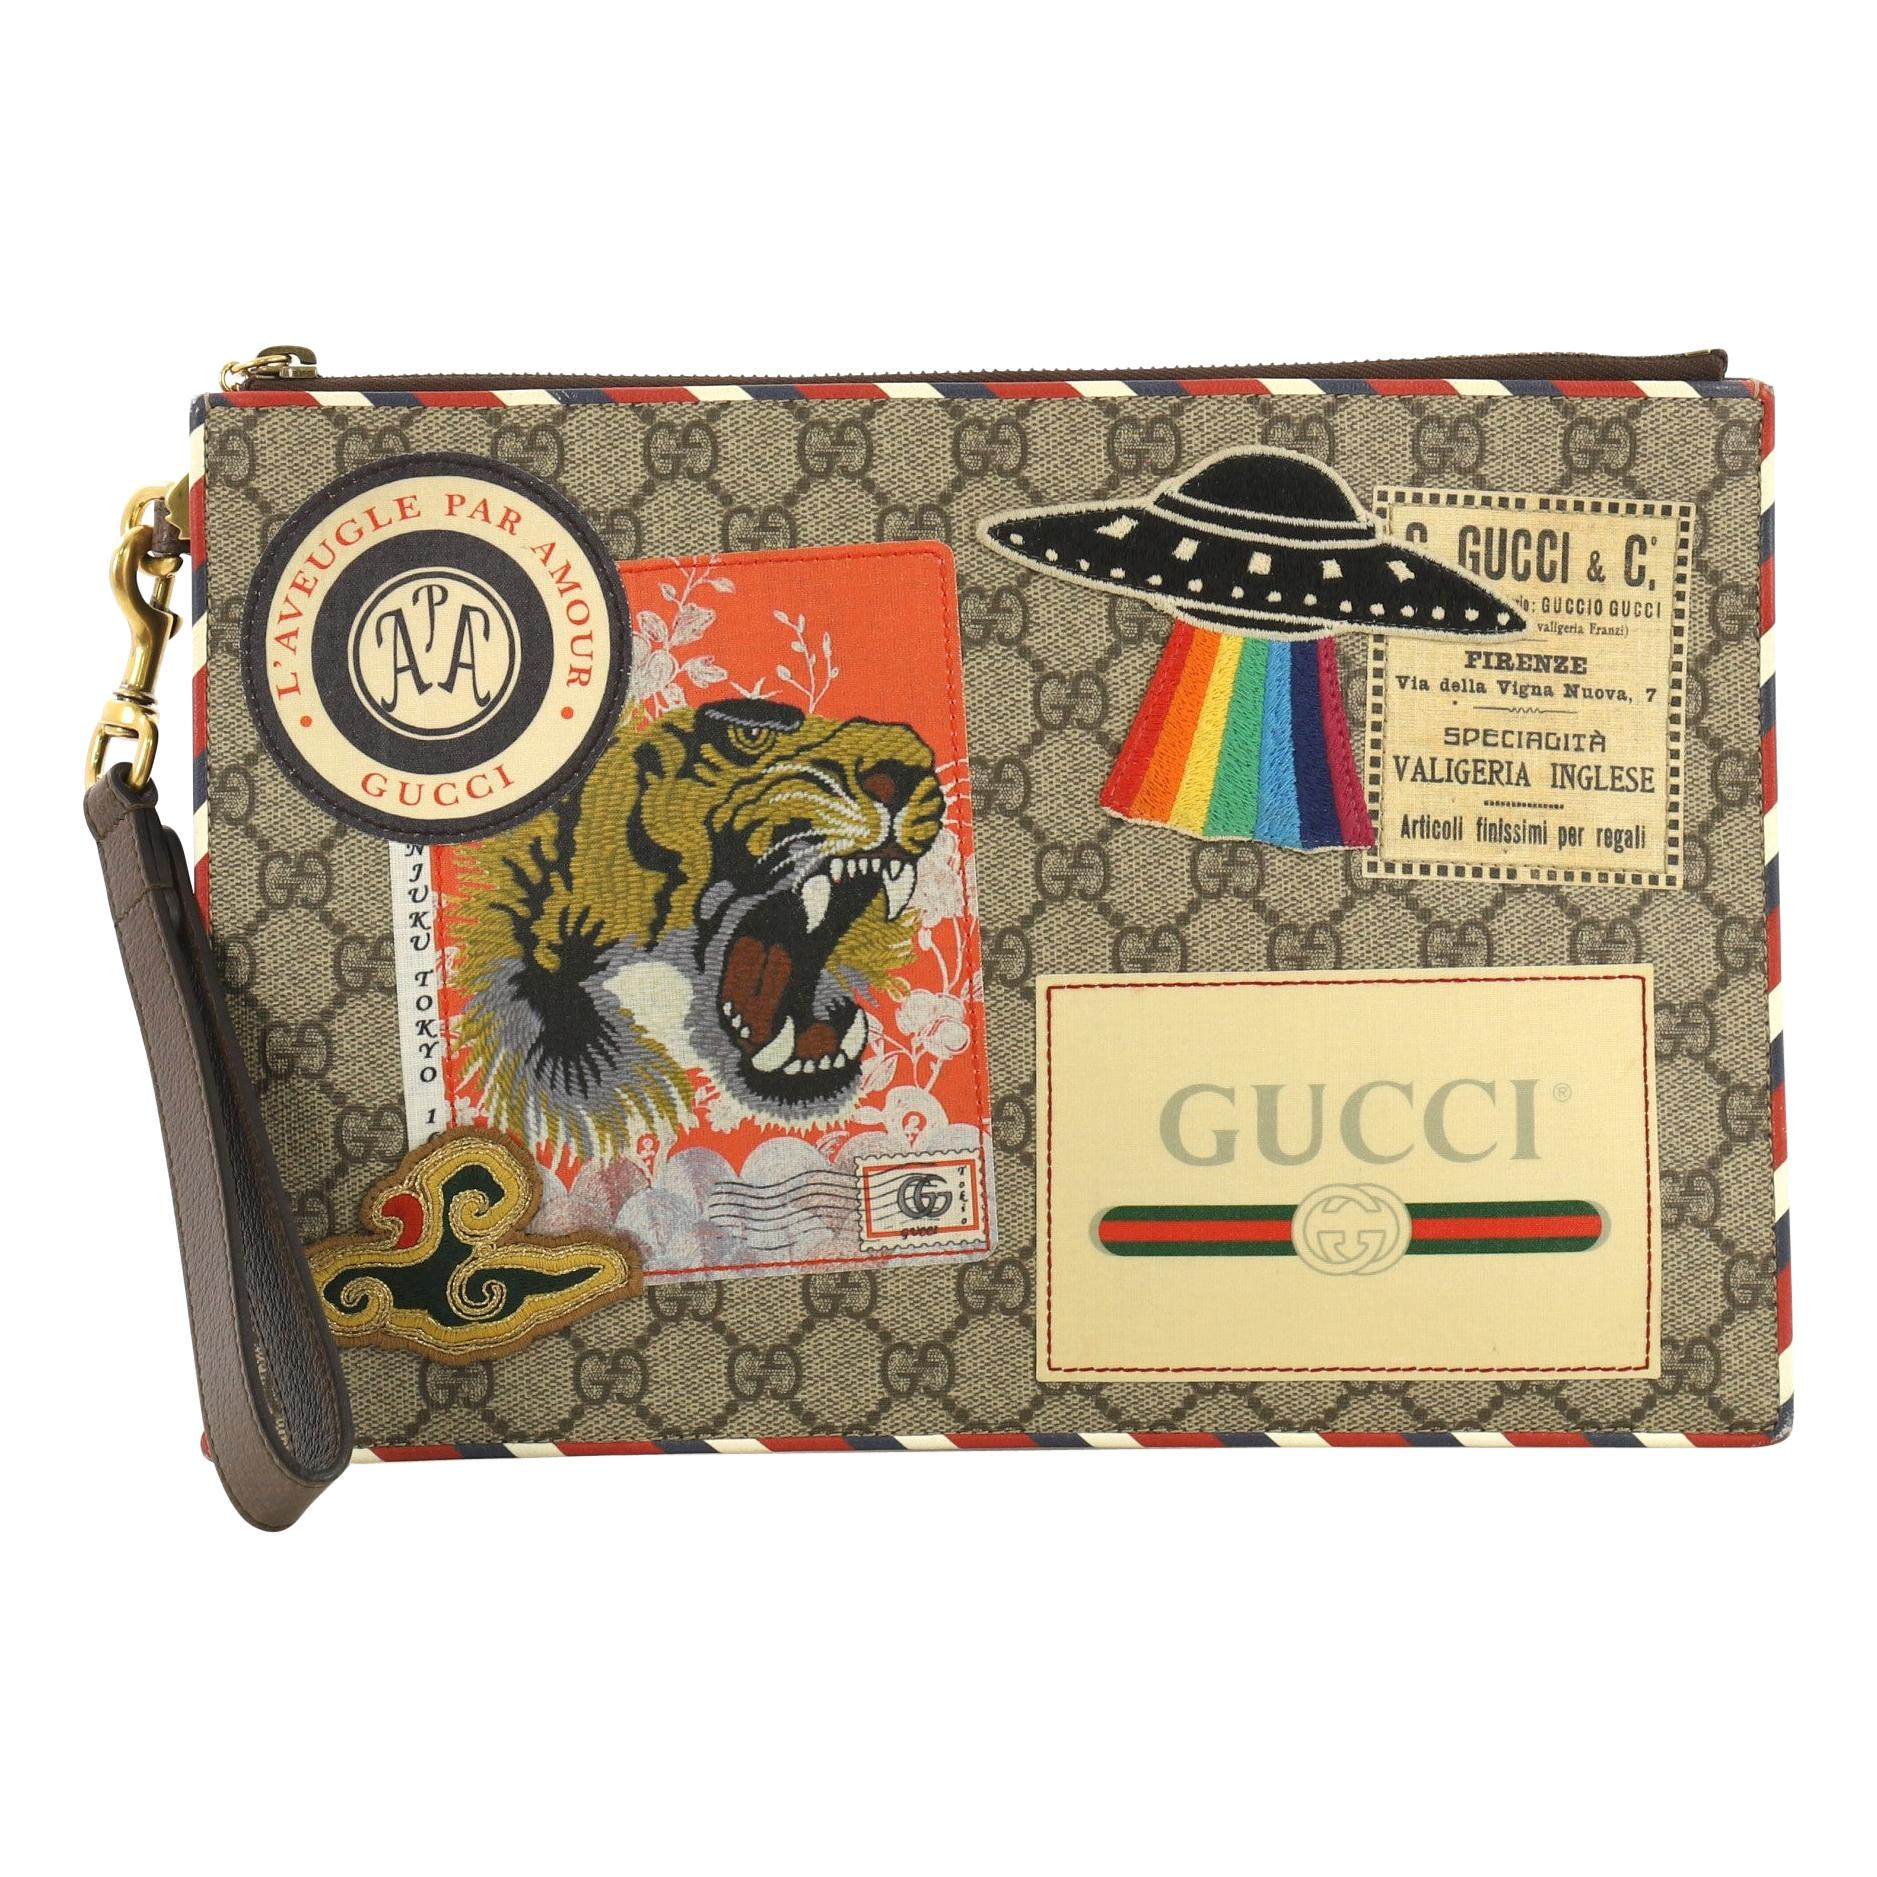 004d677203877c Vintage Gucci Wallets and Small Accessories - 99 For Sale at 1stdibs